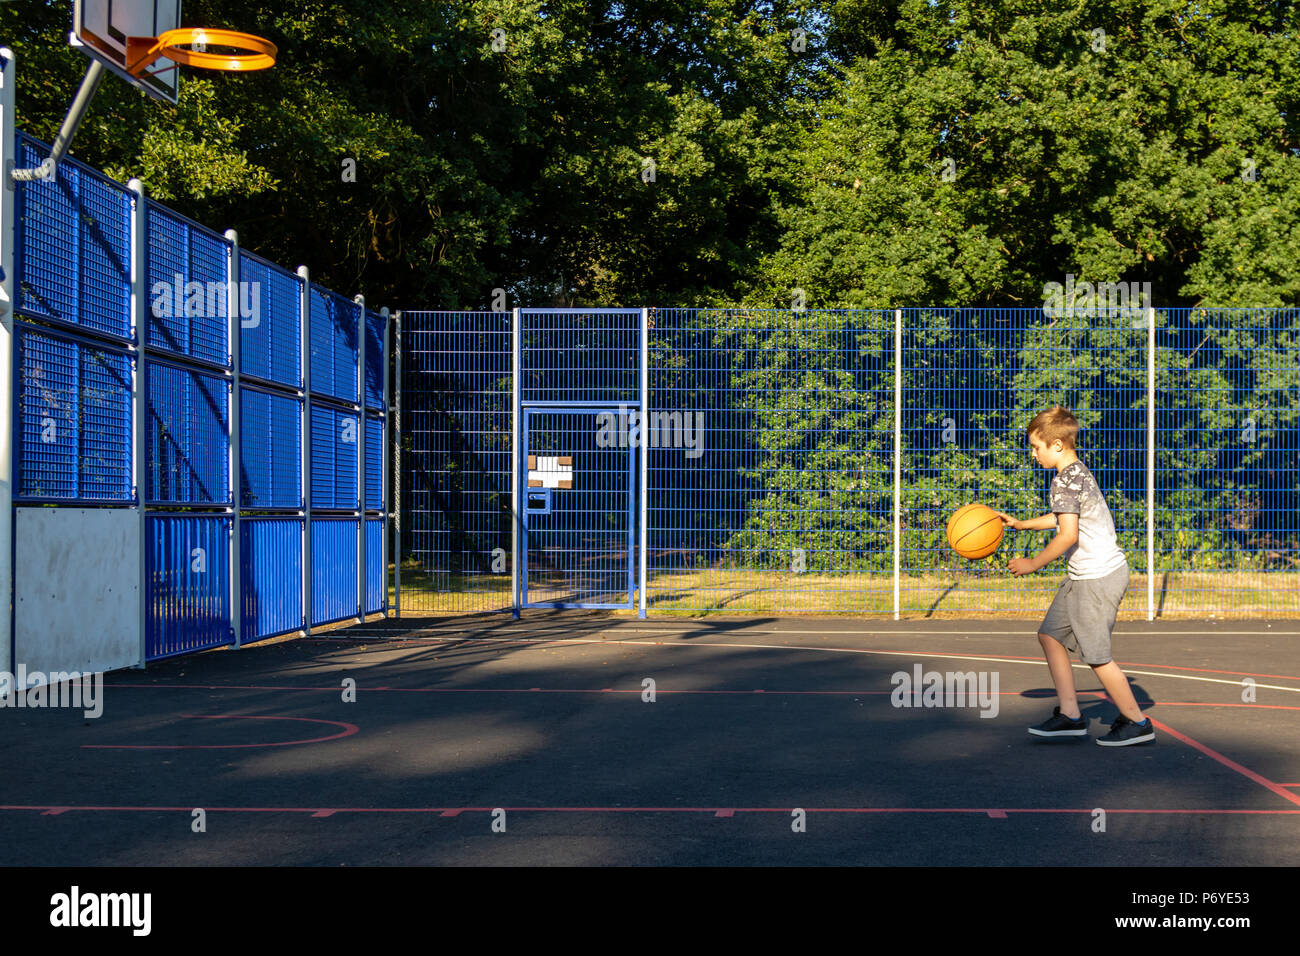 Child amp; Shooting Alamy Images Photos Basket xqwFPqS7T